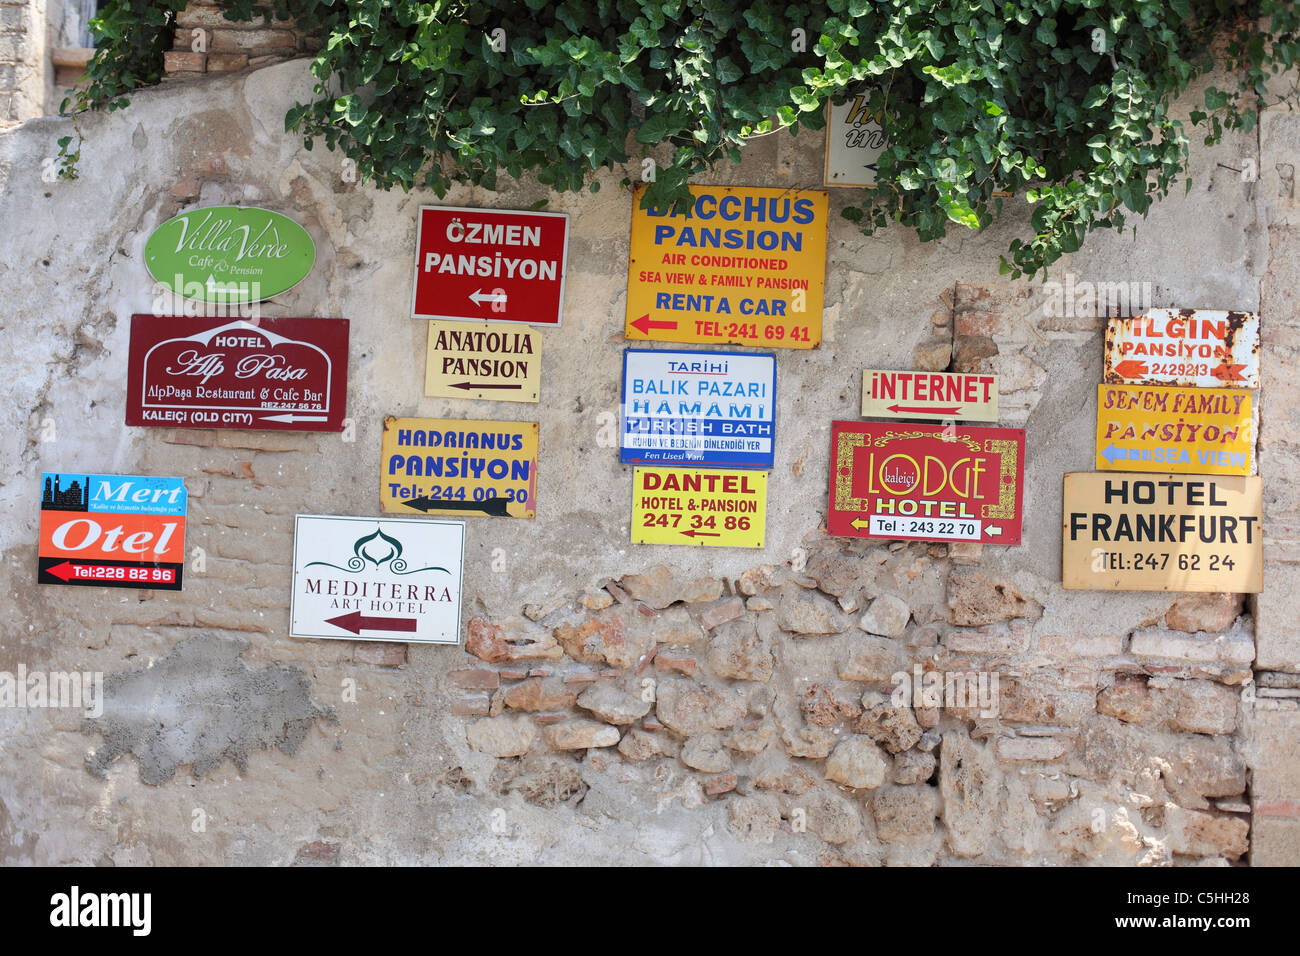 Turkey, Antalya, Kaleici, tourists, tourist, old town, summer, hotel and pension signs - Stock Image